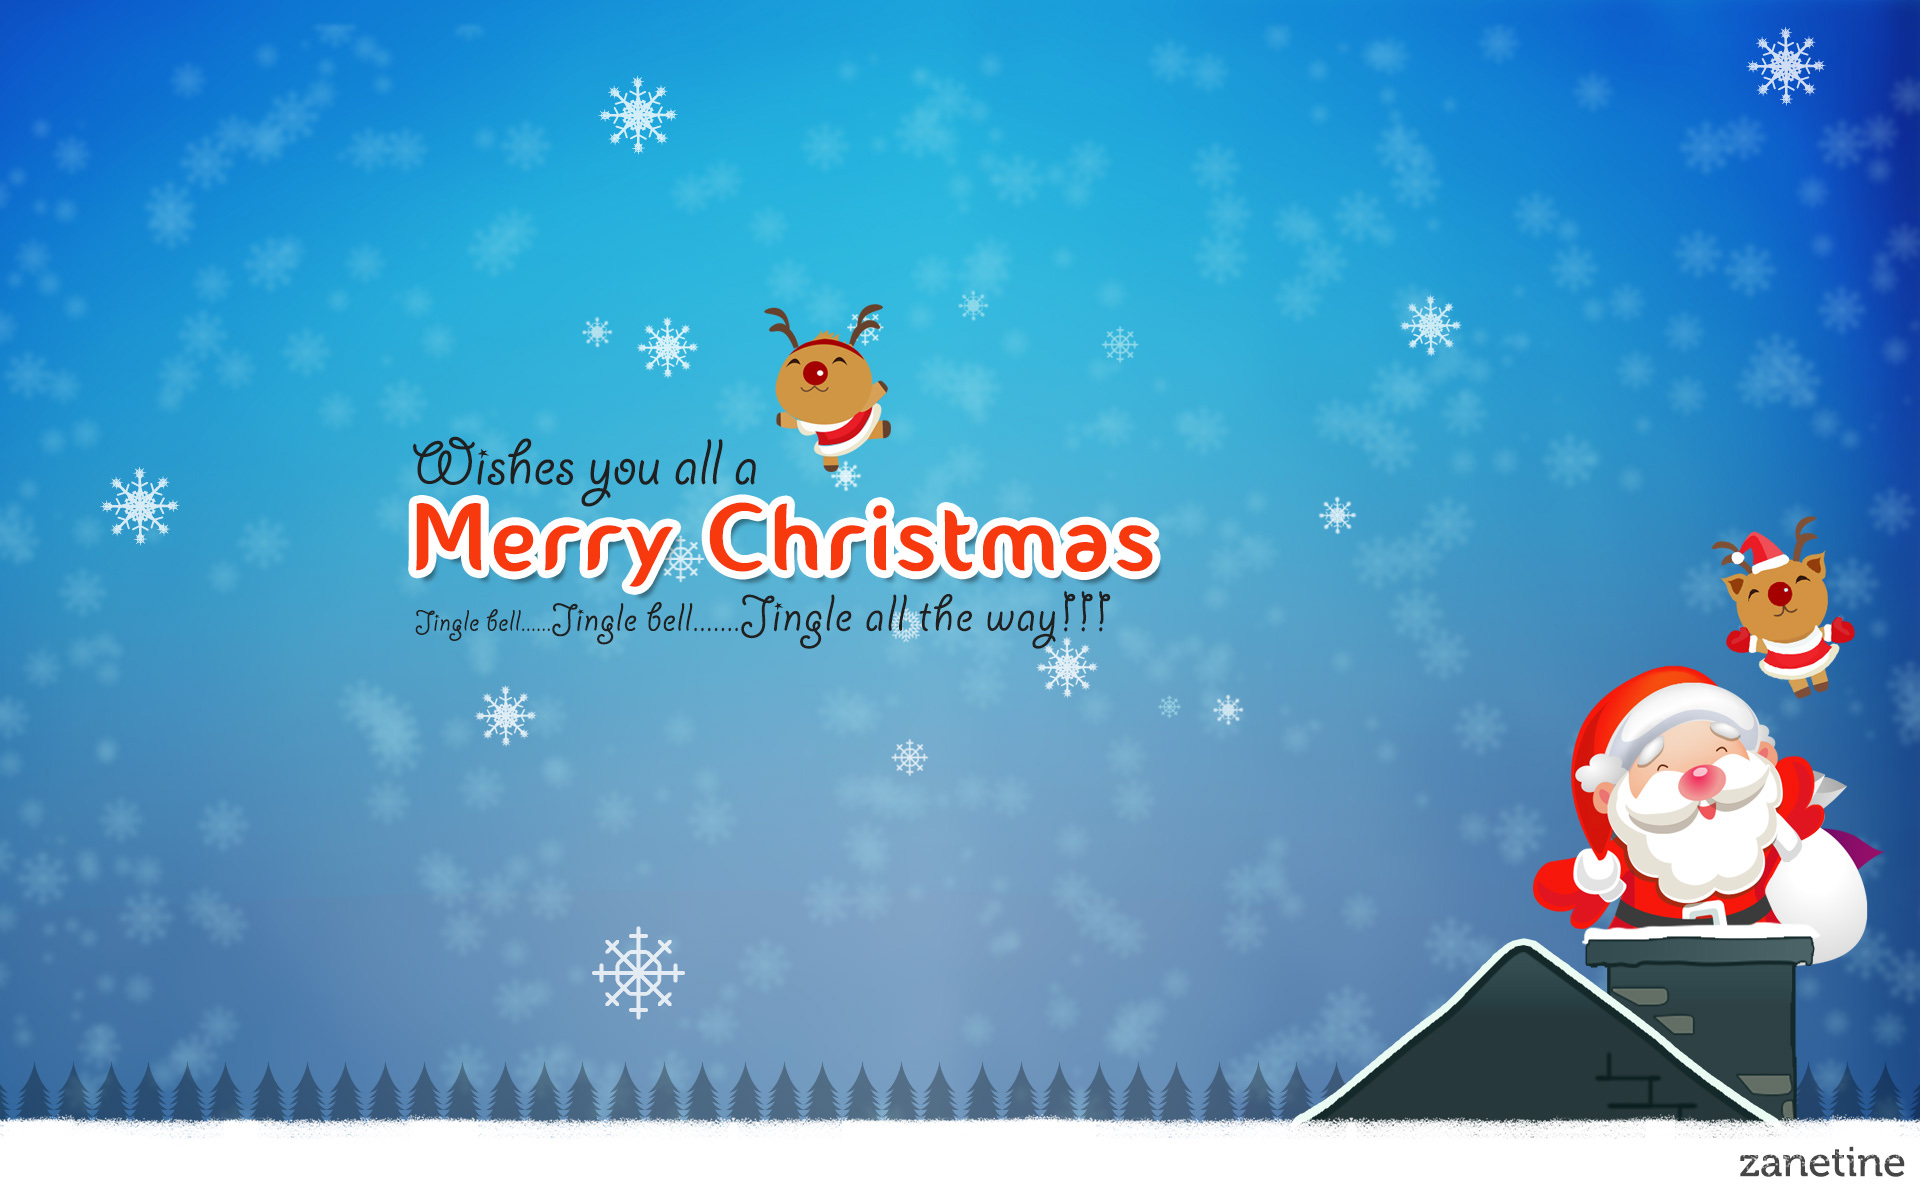 merry christmas jingle bells wallpapers | wallpapers hd